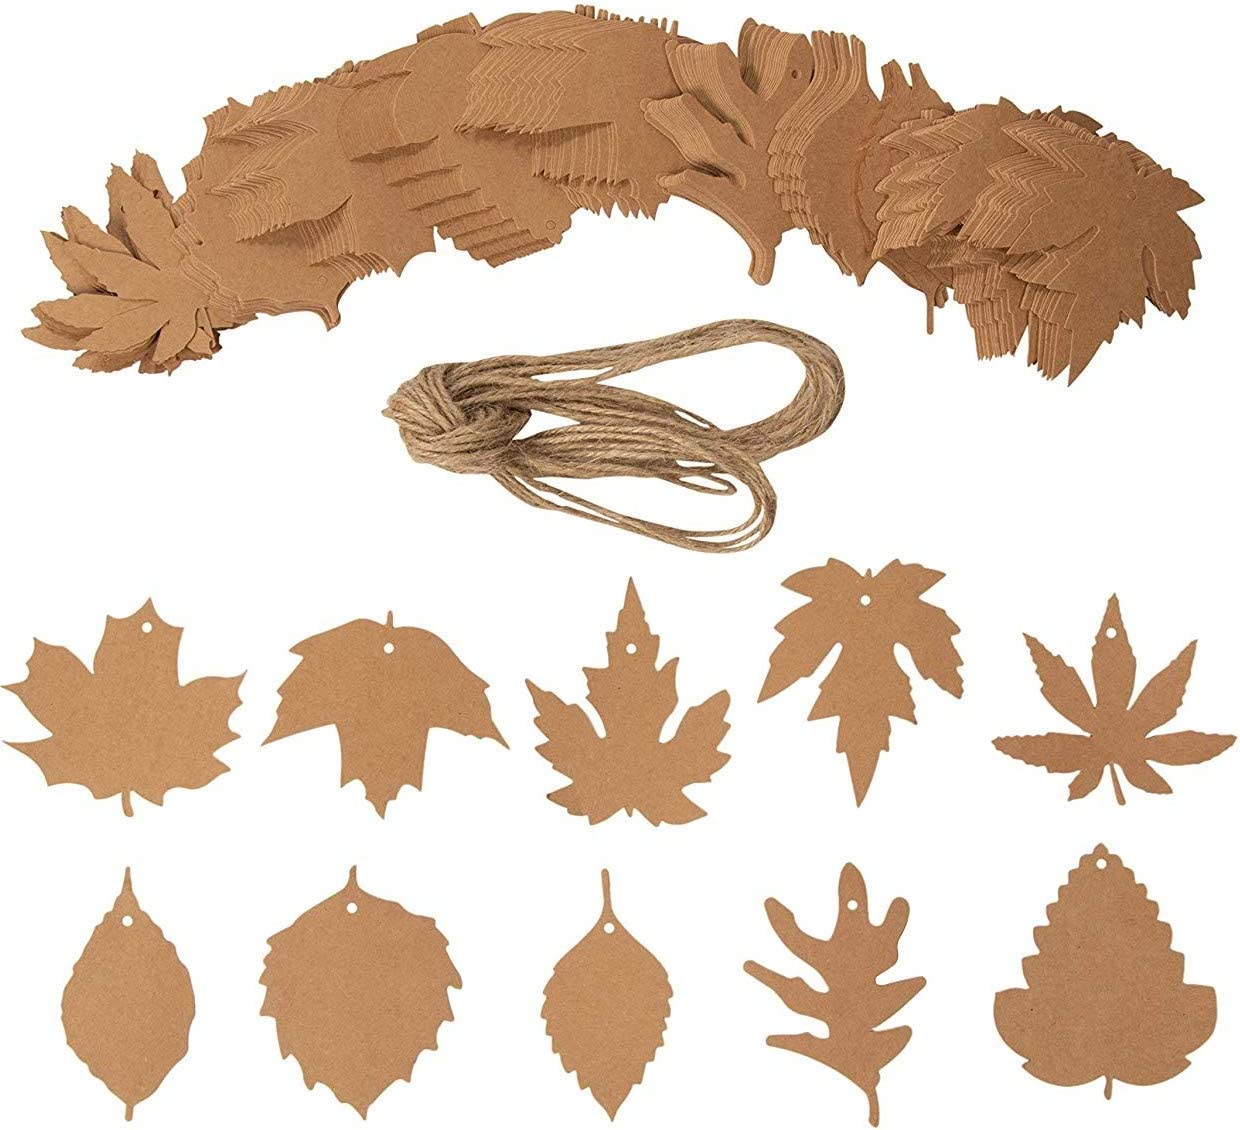 180 Pcs Thanksgiving Gift Tags Maple Leaves Favor Craft Paper Tags Favor with 180PCS Organza Ribbons for Autumn Christmas Wedding Craft Presents